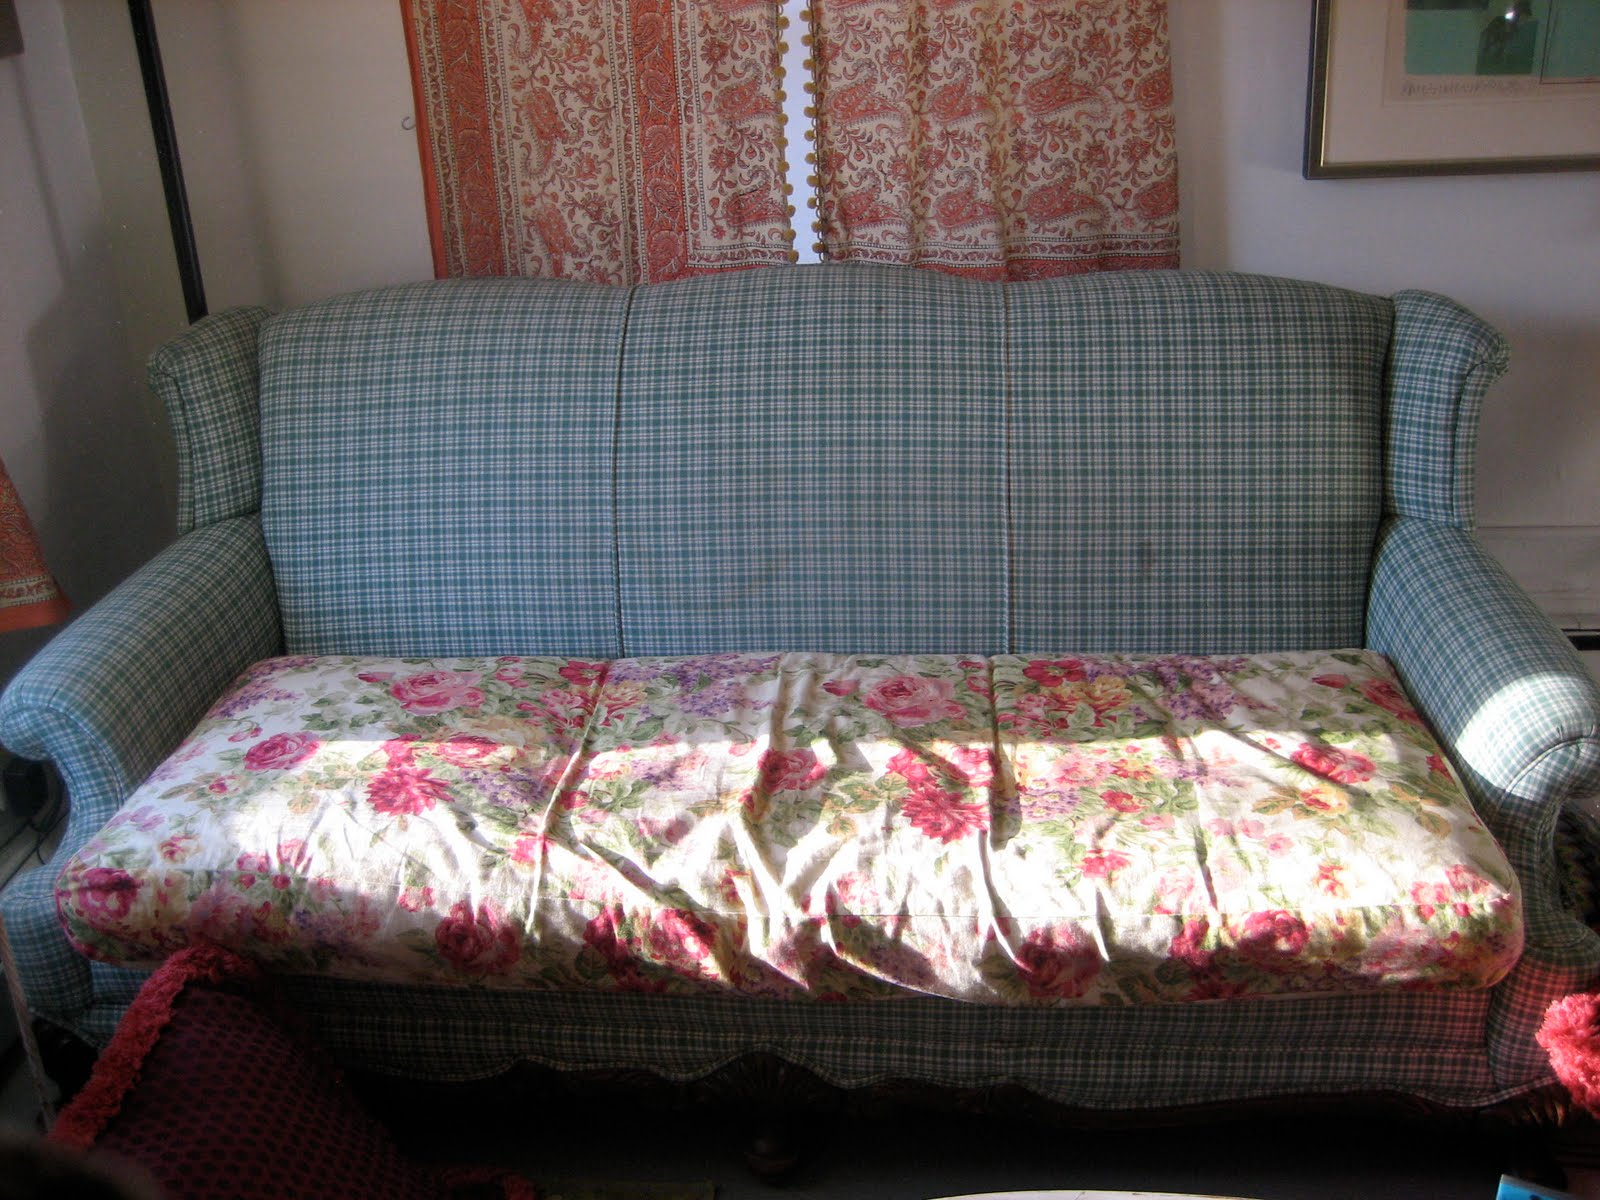 How Much Fabric To Make A Sofa Cover Baby Blue Crushed Velvet Tiptoethrough Diy Upgrade On The Cheap